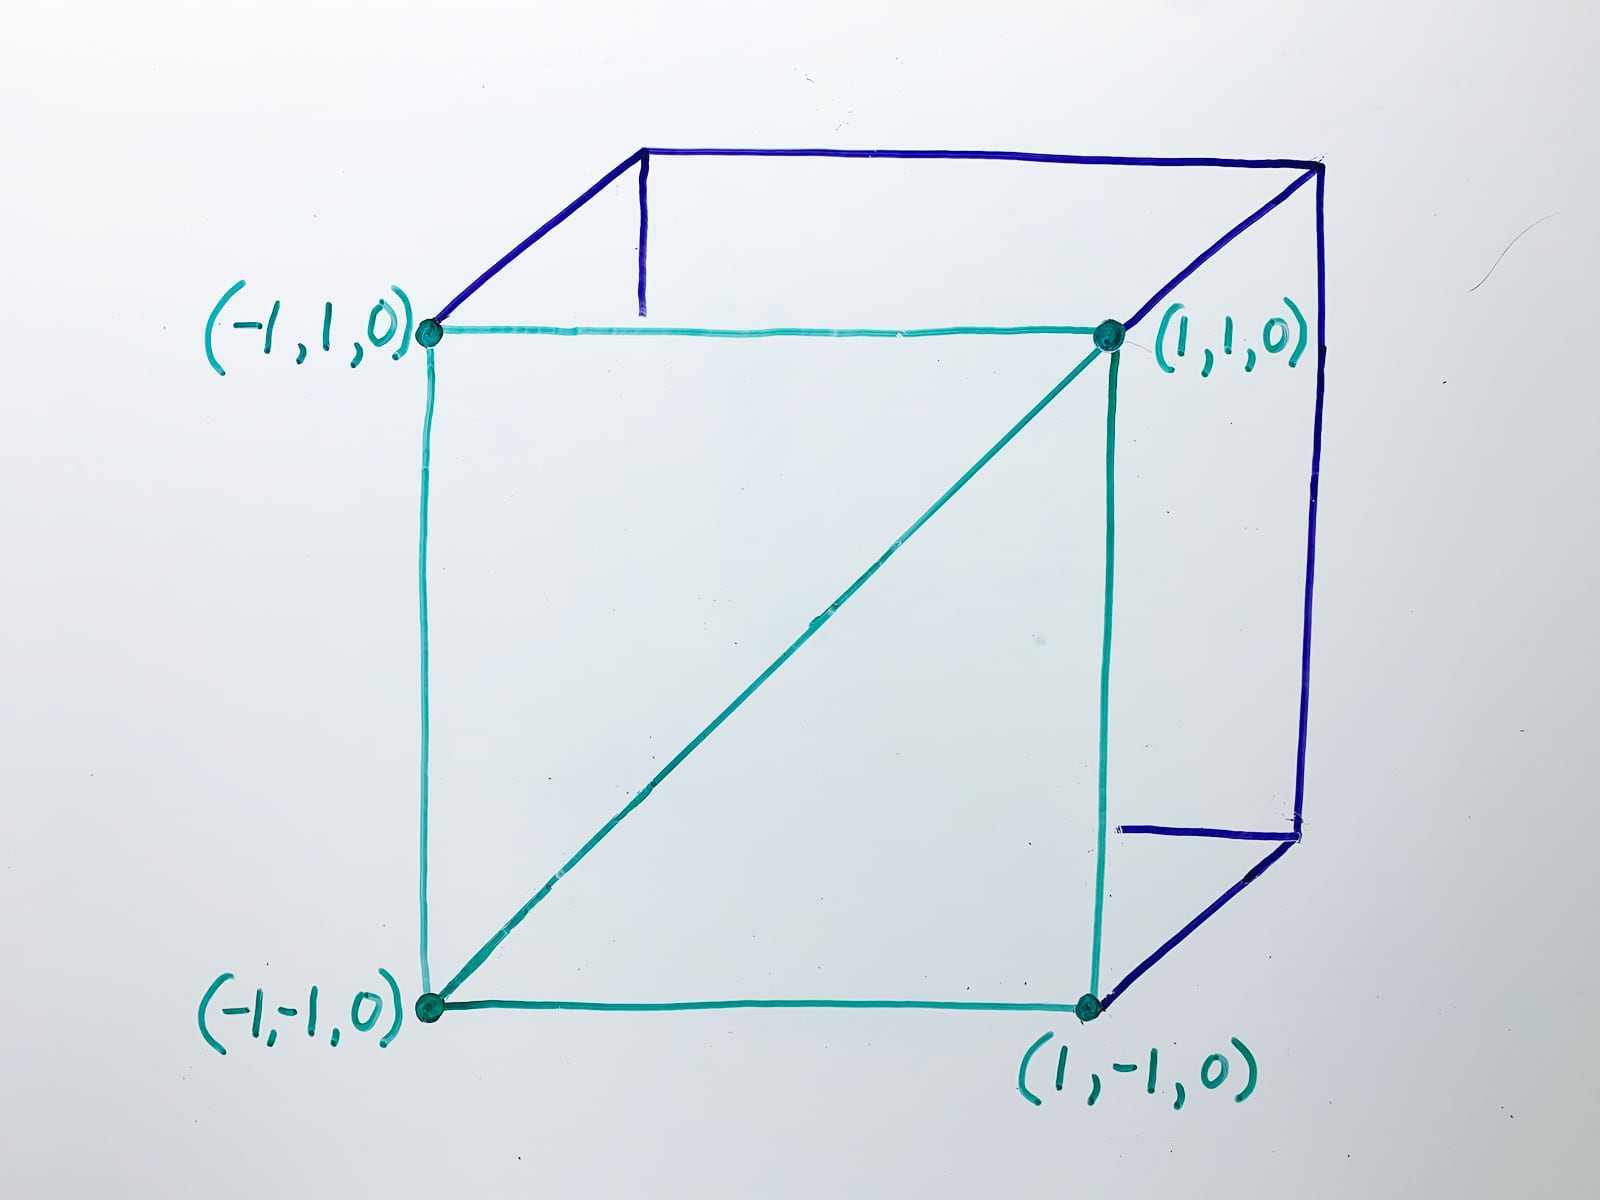 Two triangles filling the camera view in the normalized device coordinate system